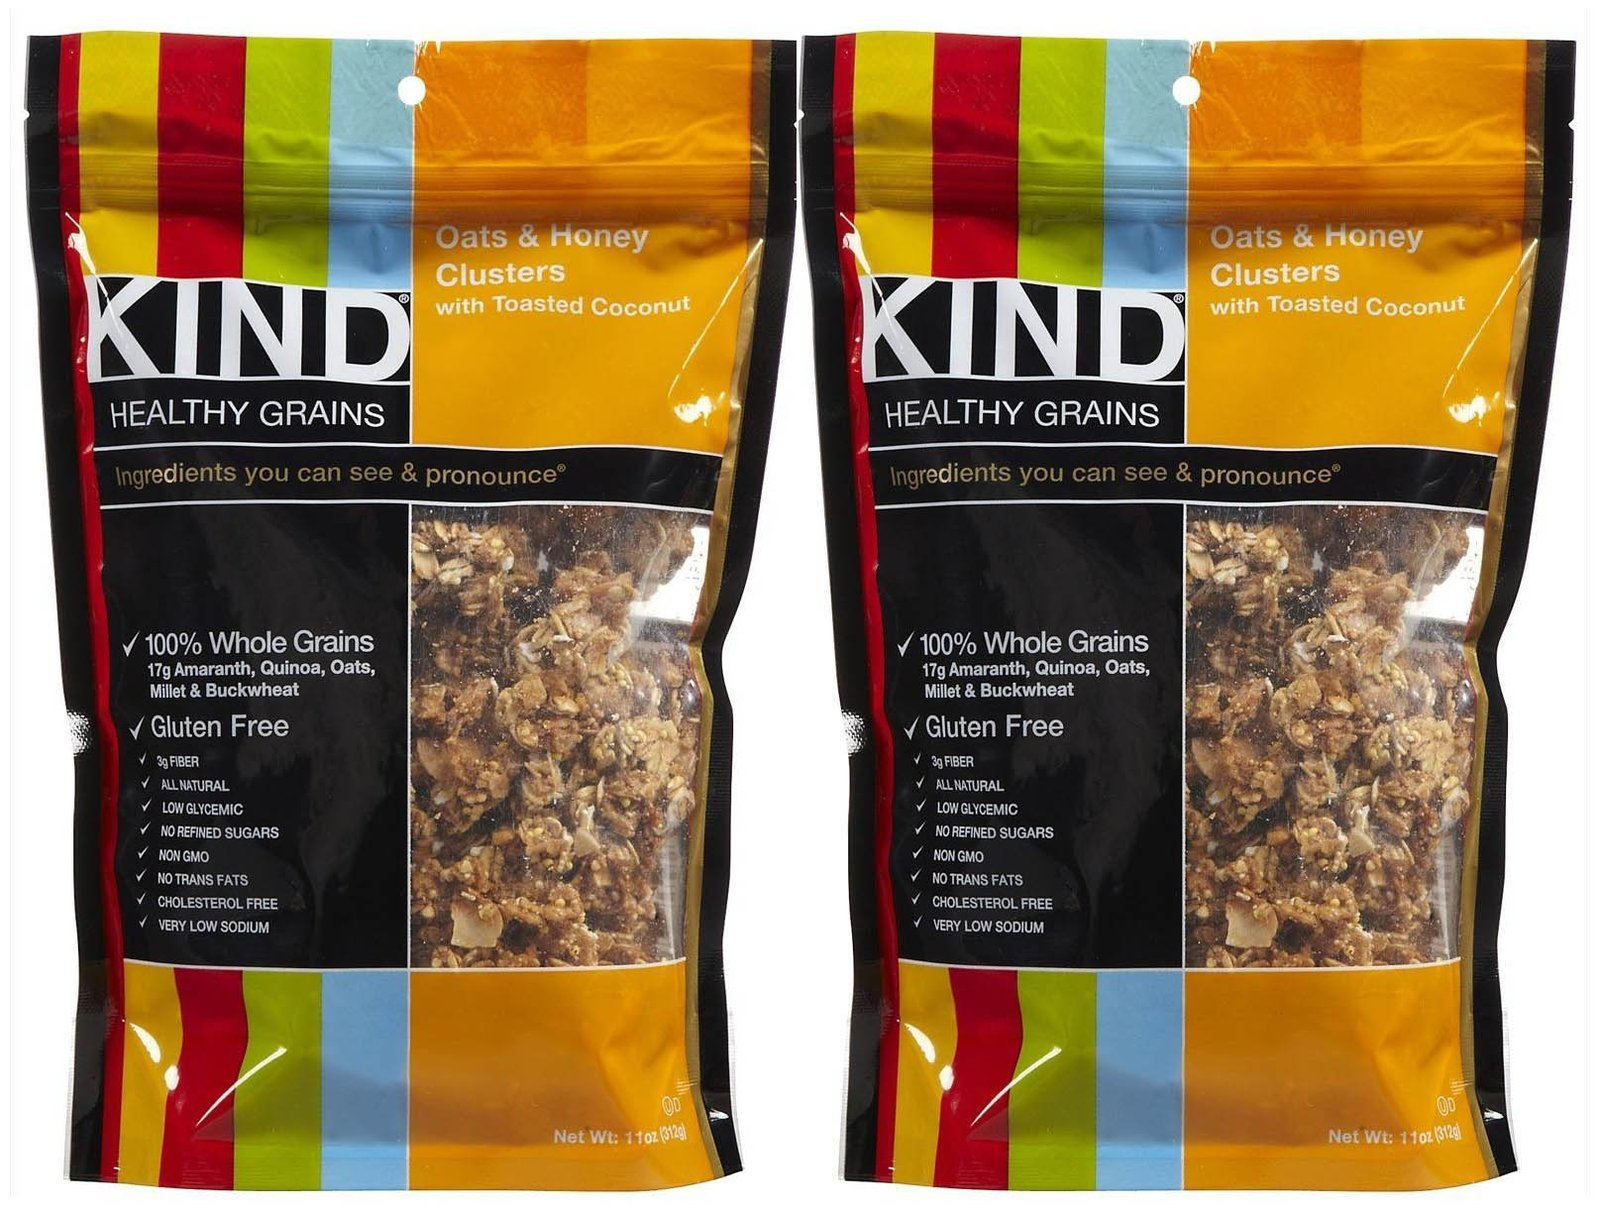 KIND Healthy Grains Clusters - Oats & Honey with Toasted Coconut - 11 Oz - 2 Pack by KIND